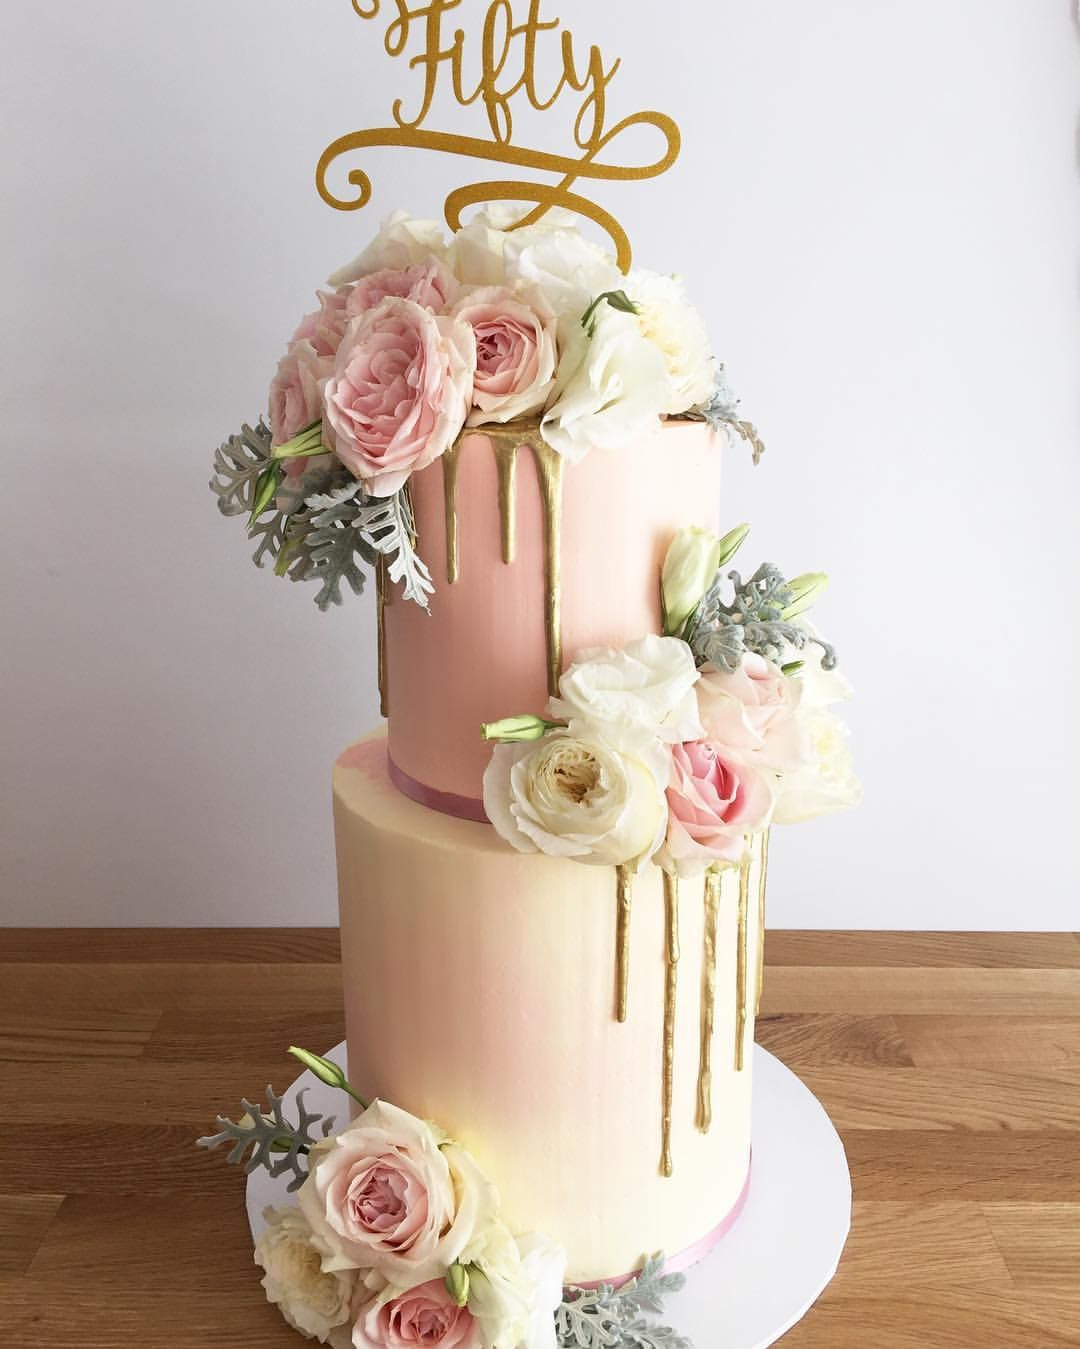 727 Likes 14 Comments Perth Wedding Cakes